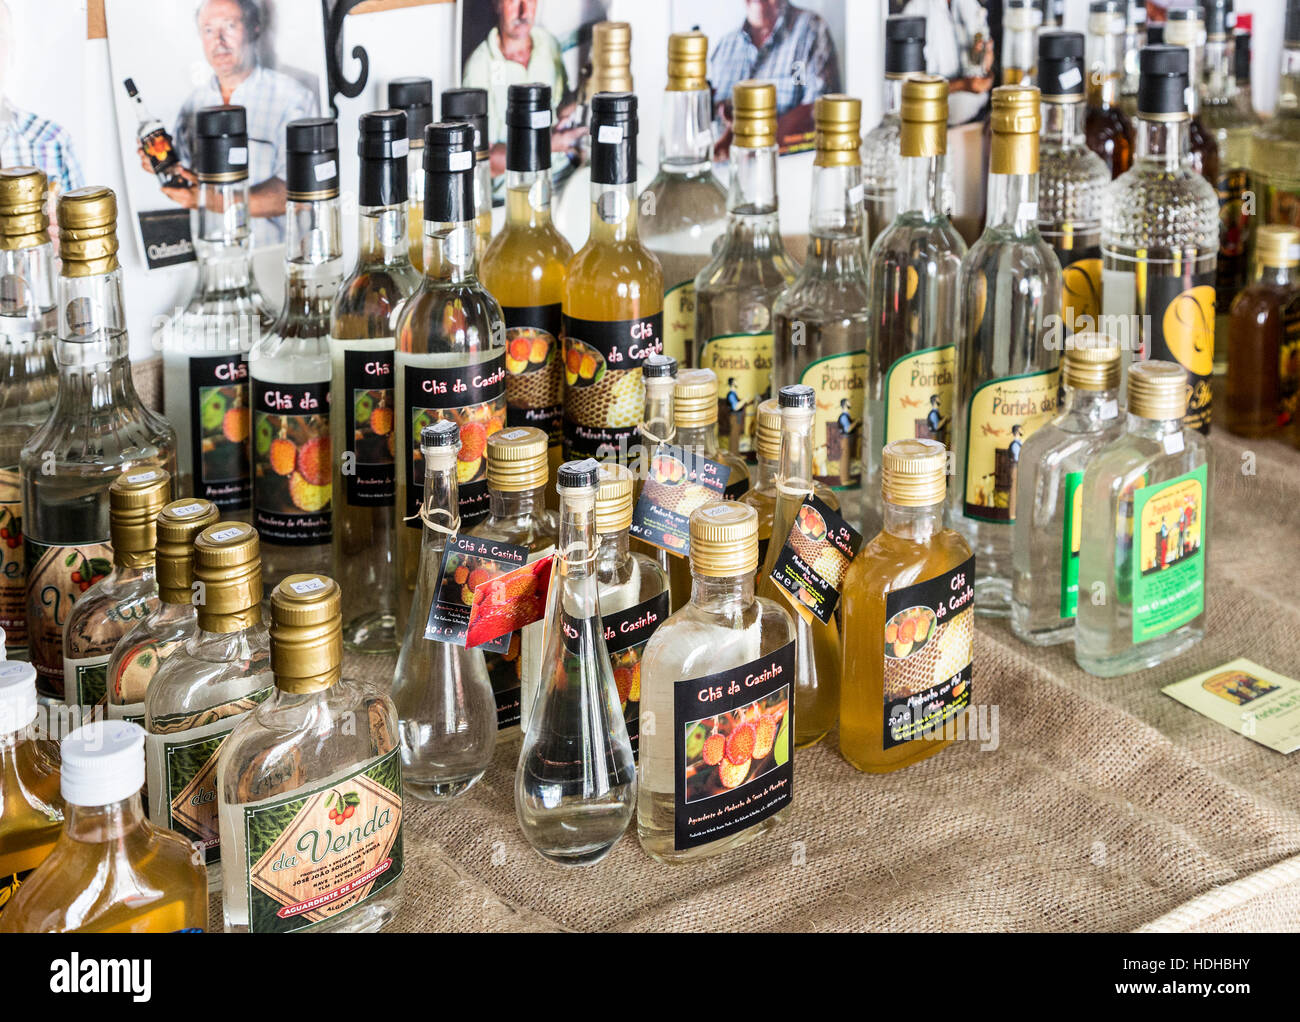 Locally made spirits and liqueurs, Monchique, Algarve, Portugal - Stock Image